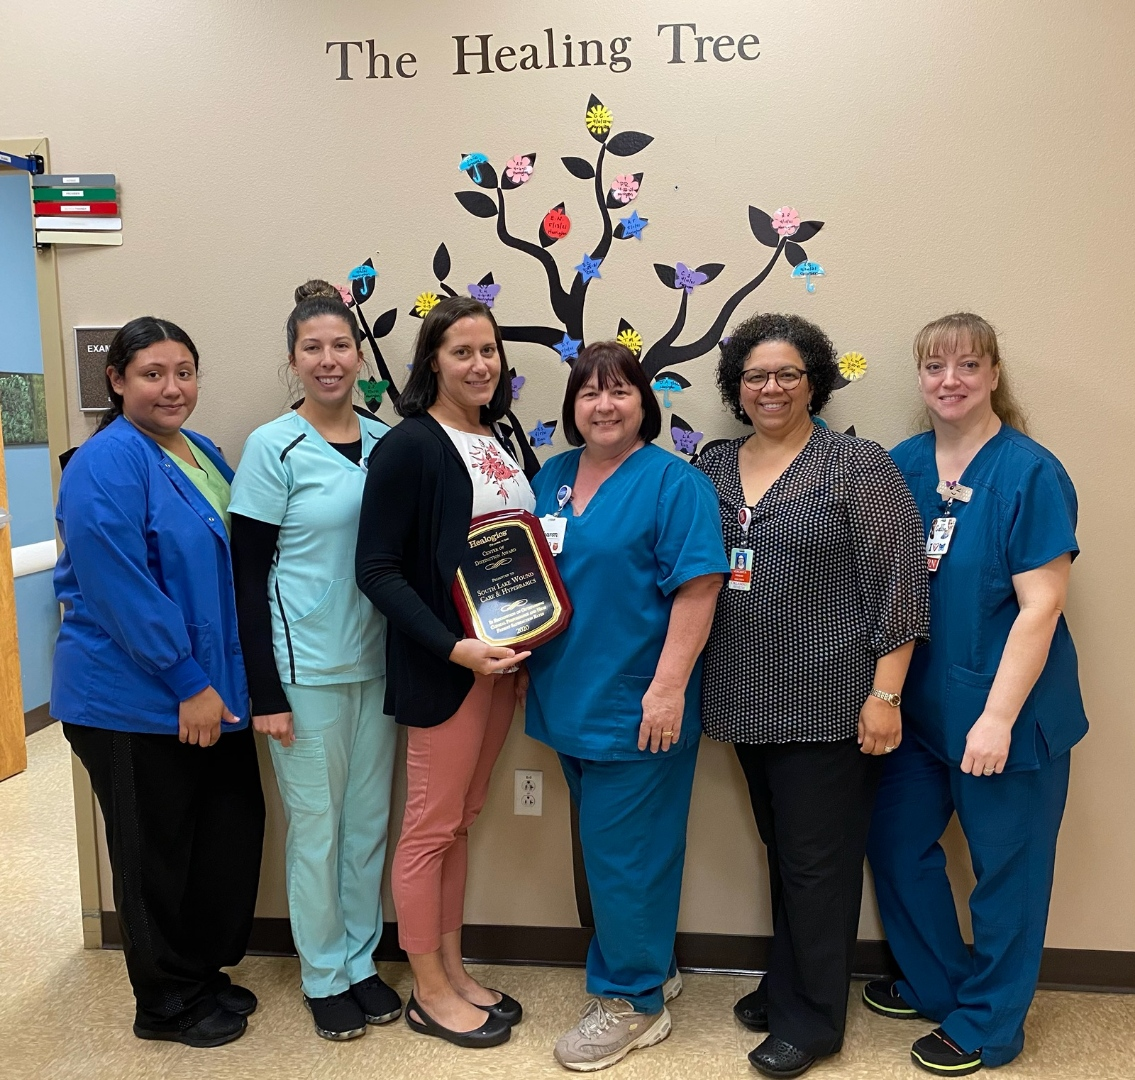 We are proud to announce Orlando Health South Seminole Hospital and Orlando Health South Lake Hospital have received the @Healogics National Center of Distinction Award for 2020. Congratulations to our teams on earning this distinction! #ChooseOrlandoHealth  #WHAM https://t.co/M5NODqssVL